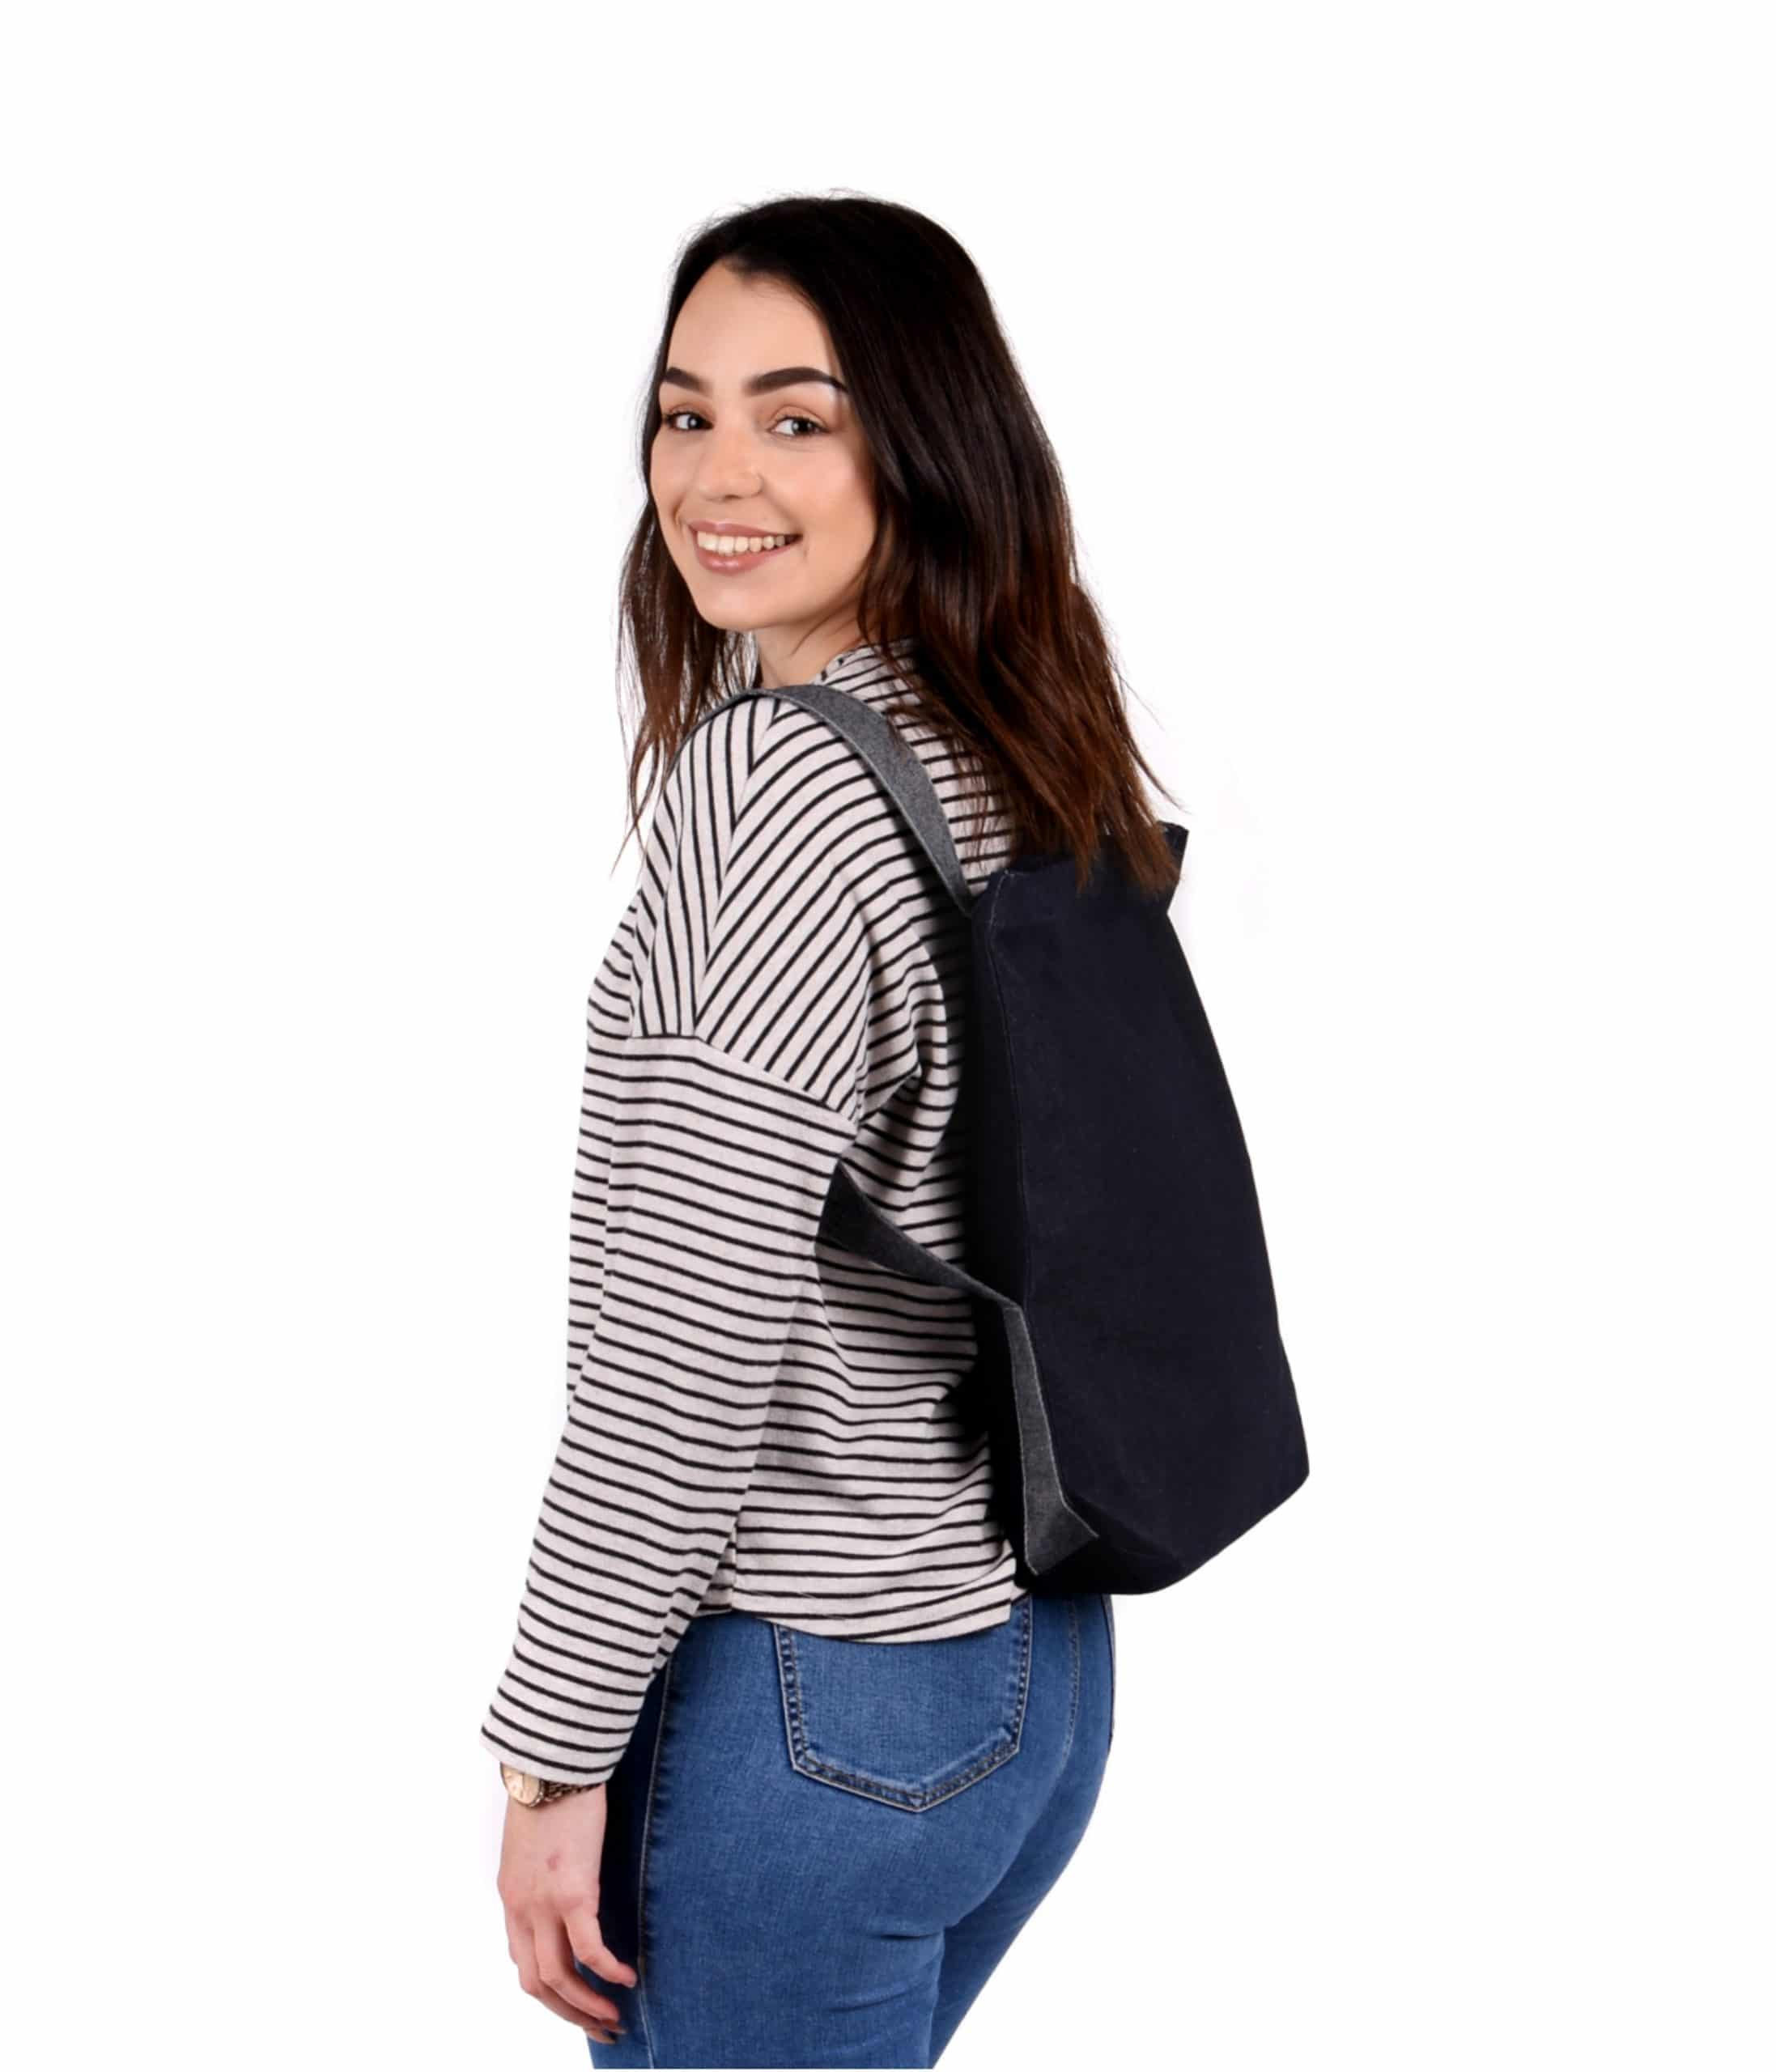 Denim backpack shopper